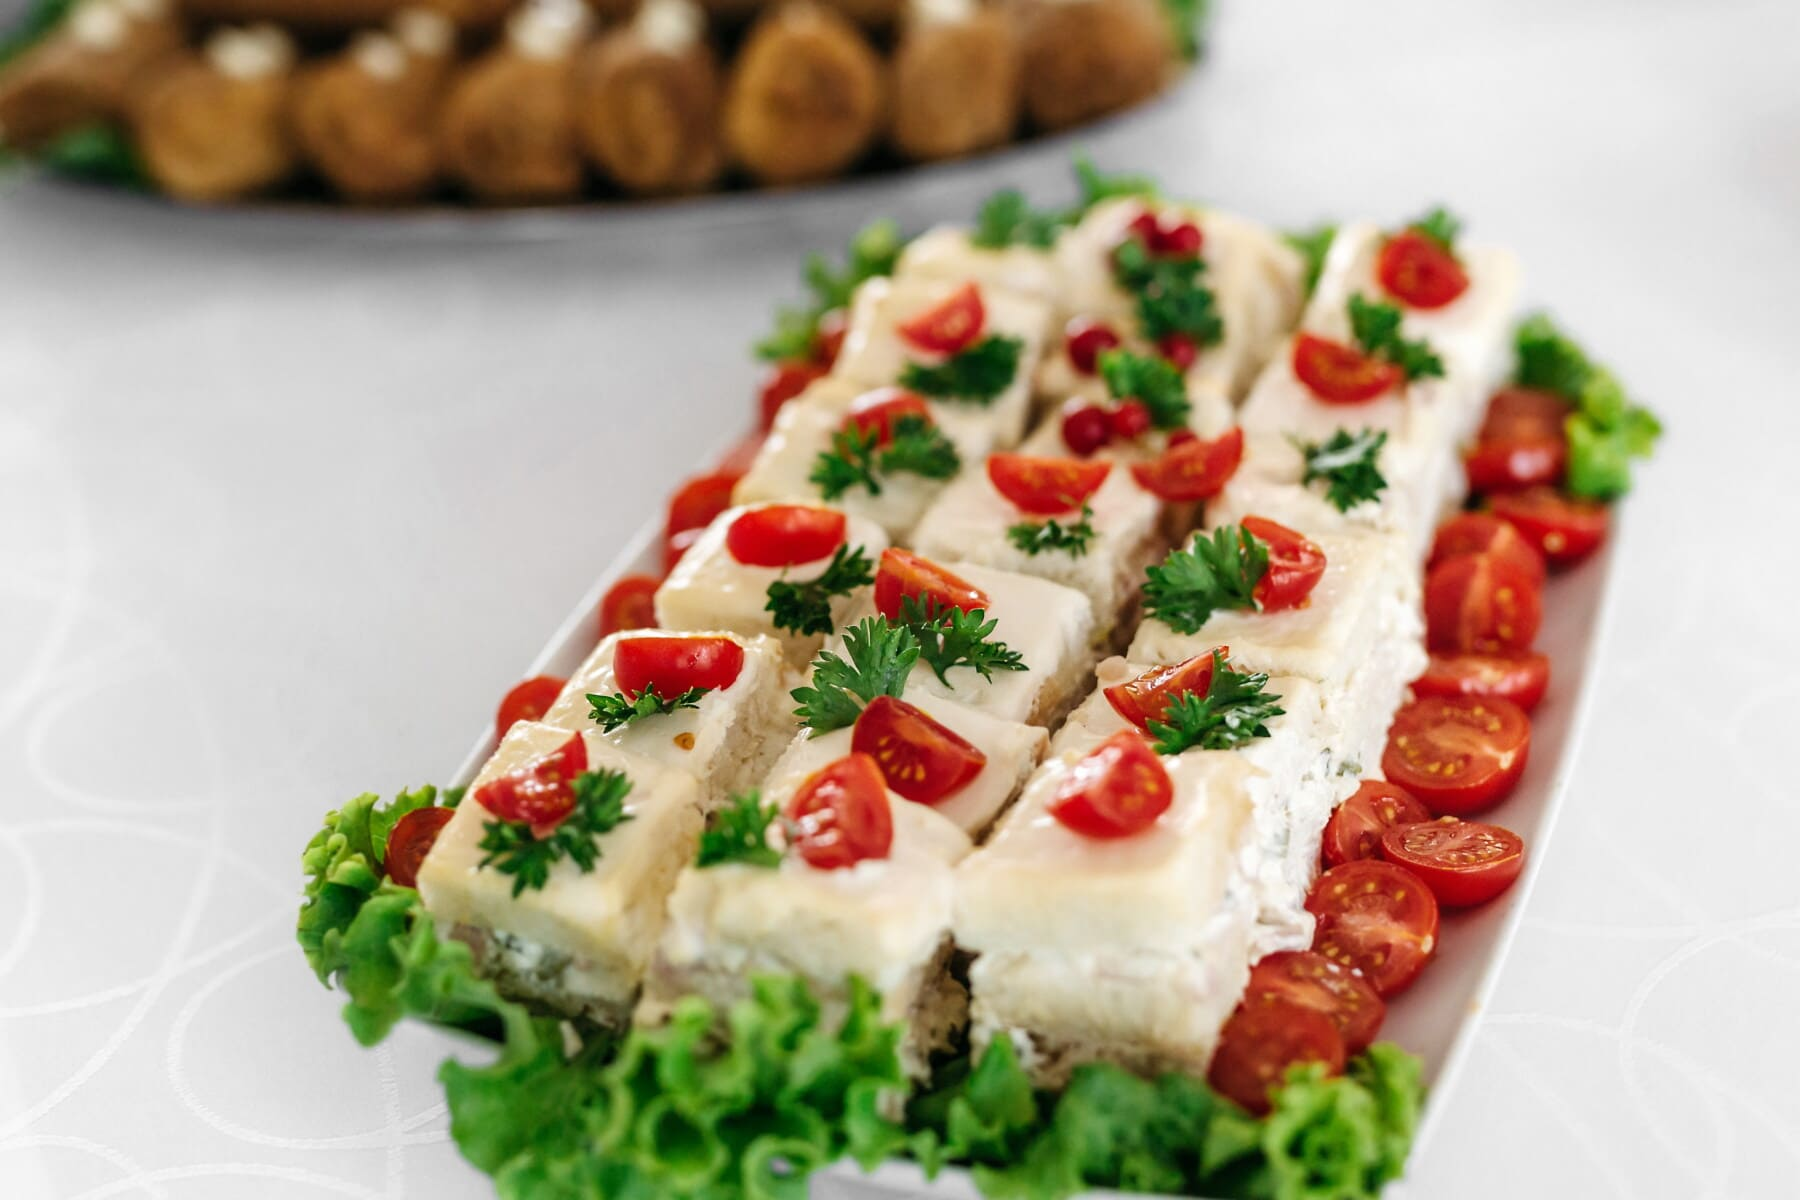 tomatoes, salad bar, buffet, delicious, food, lunch, salad, restaurant, appetizer, meal